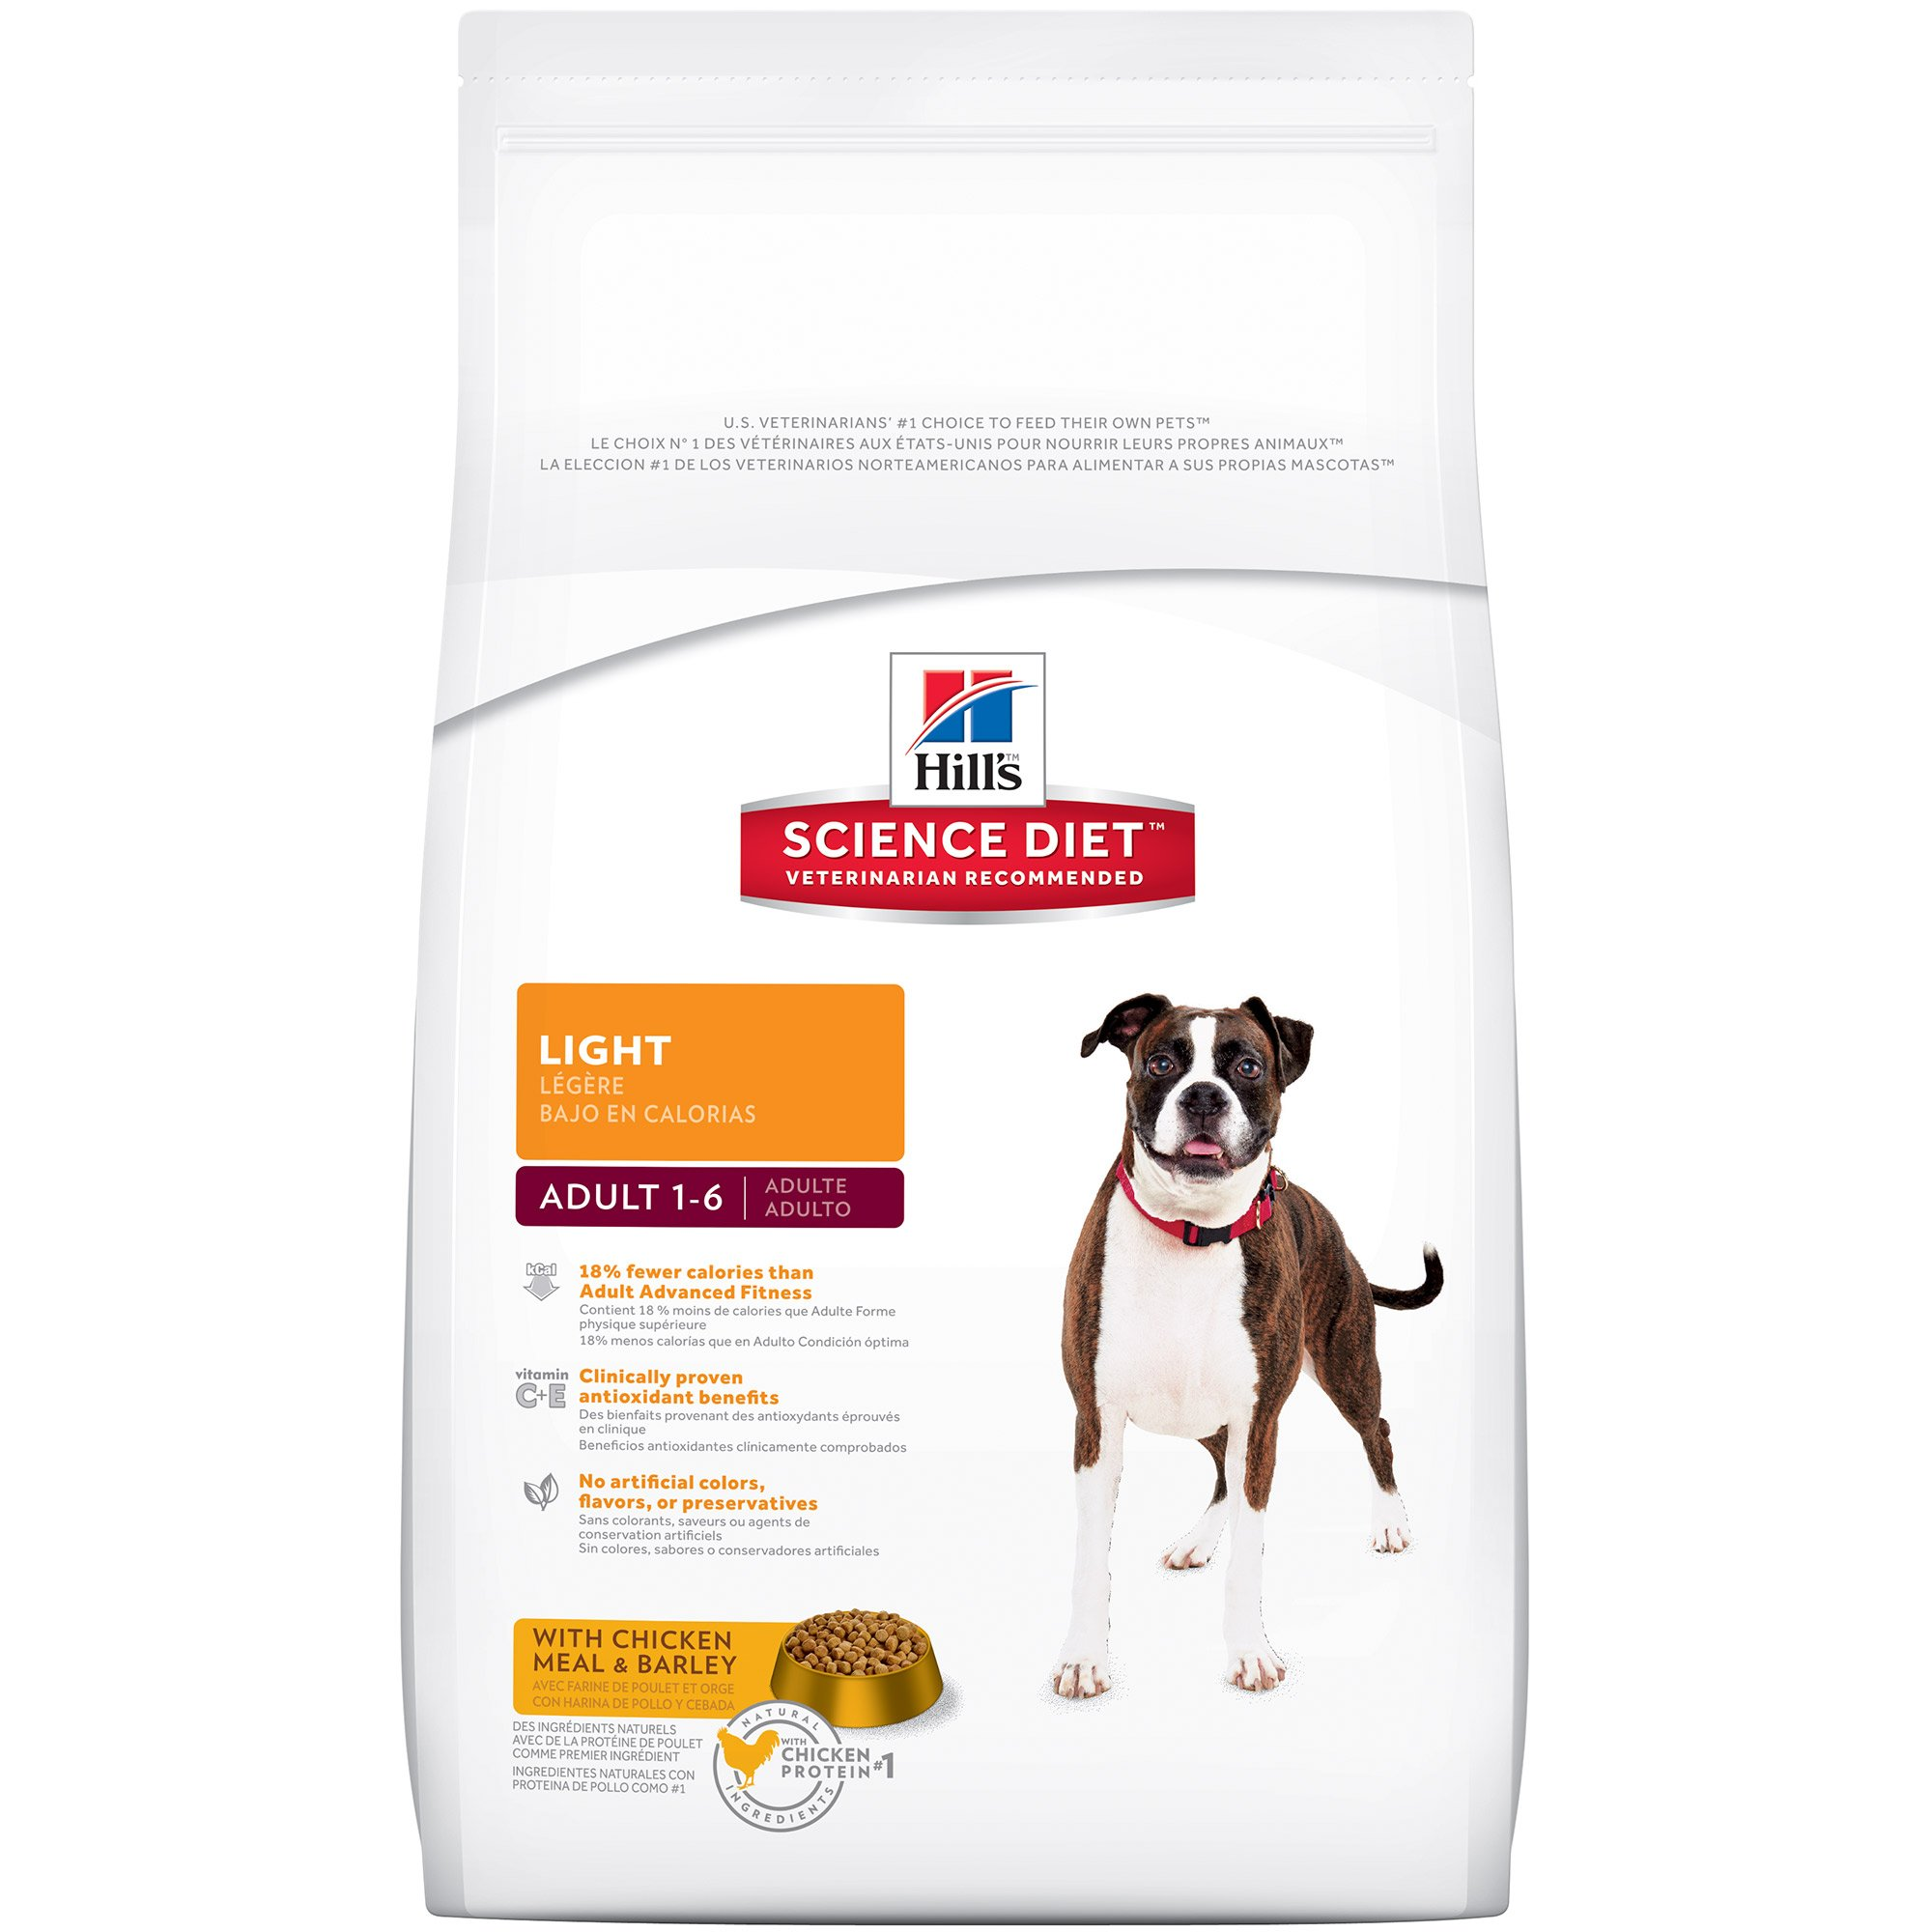 Hill's Science Diet Adult Light Dog Food, Chicken Meal & Barley for Weight Management, Dry Dog Food